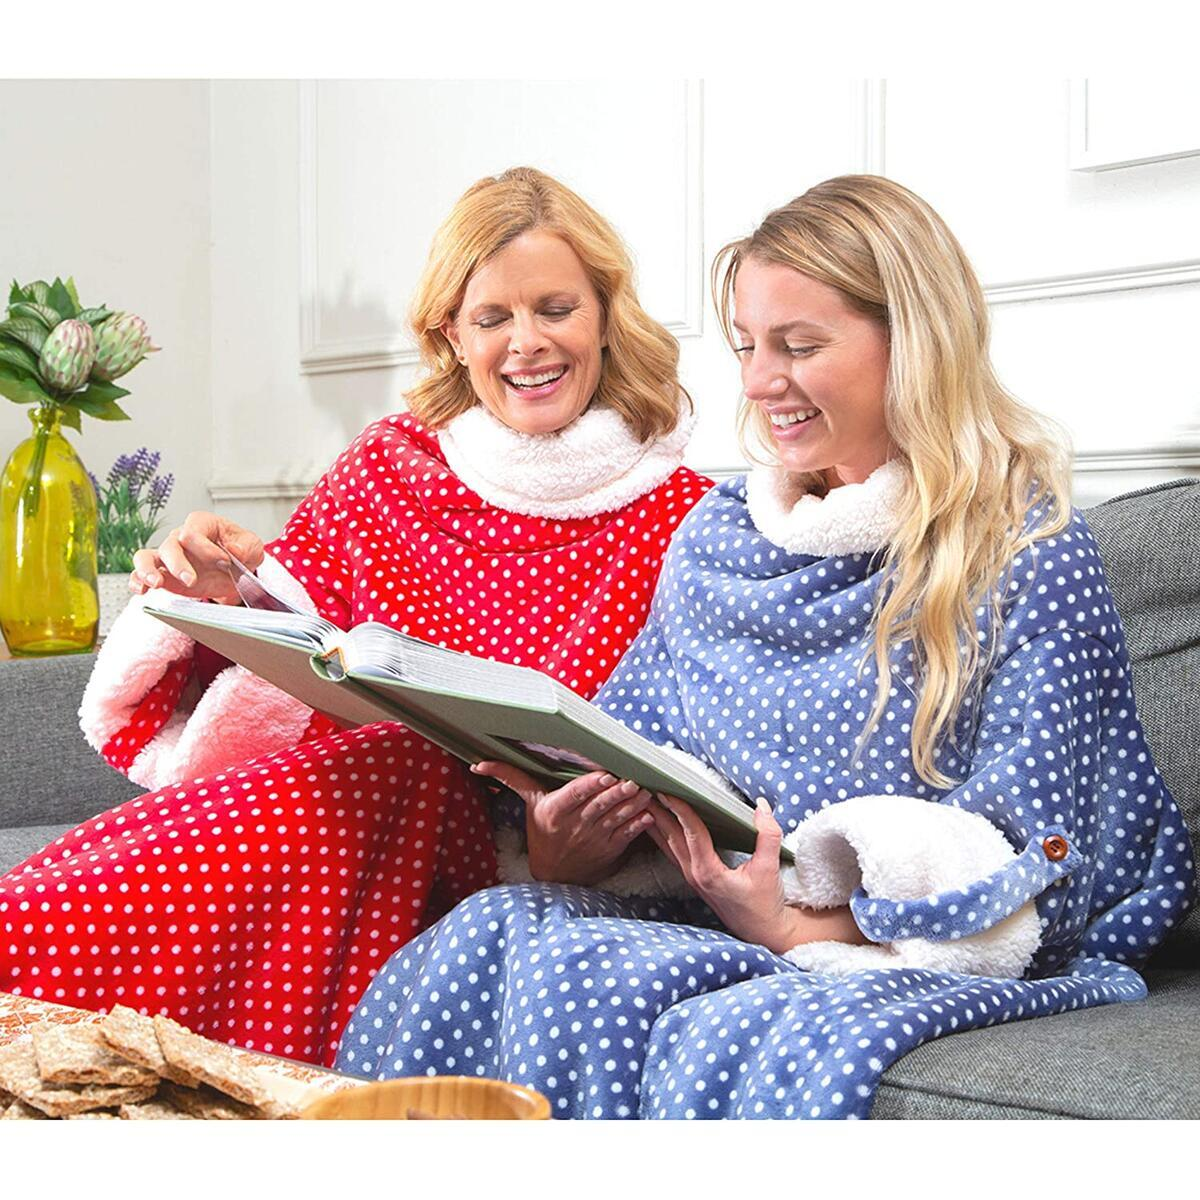 CozyRosie Wearable Blanket with Sleeves for Adults Allows You to Button Up and Go - Extra Soft, Warm and Cozy Sherpa Fleece Throw Makes for a Great Gift for Mom, Dad, Grandma or Grandpa